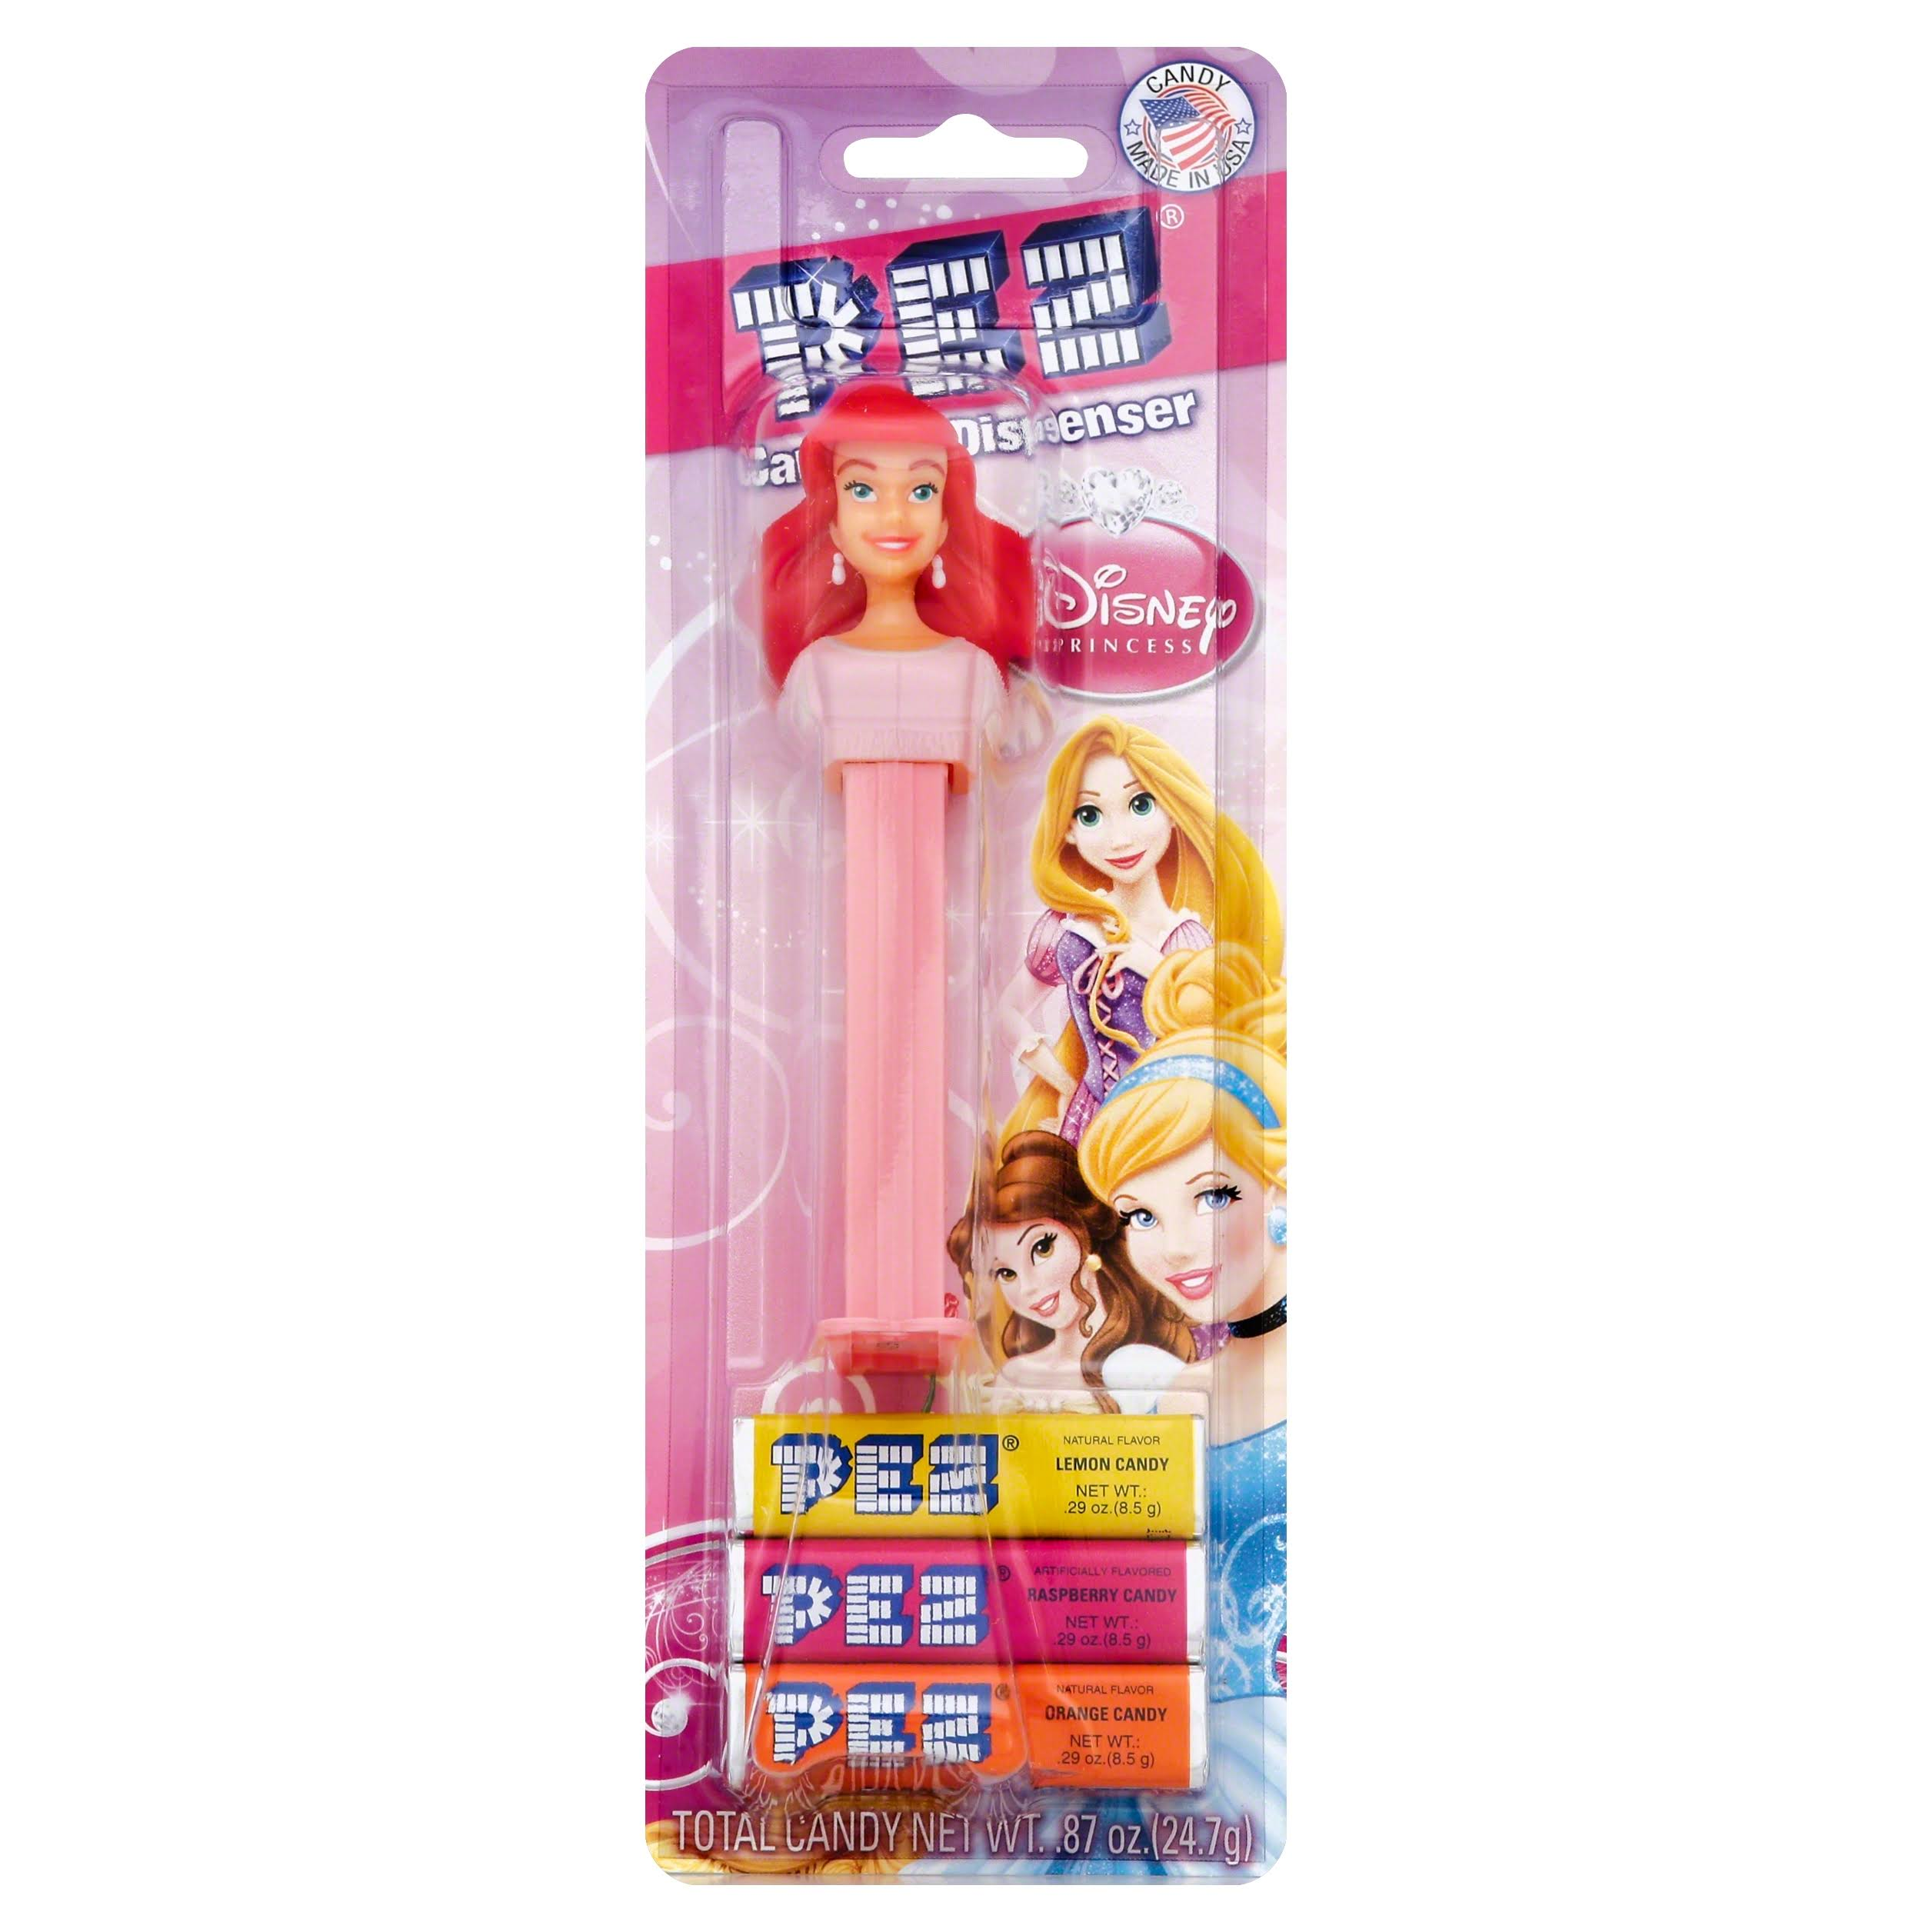 PEZ Candy & Dispenser, Disney Princess - 1 set, 0.87 oz